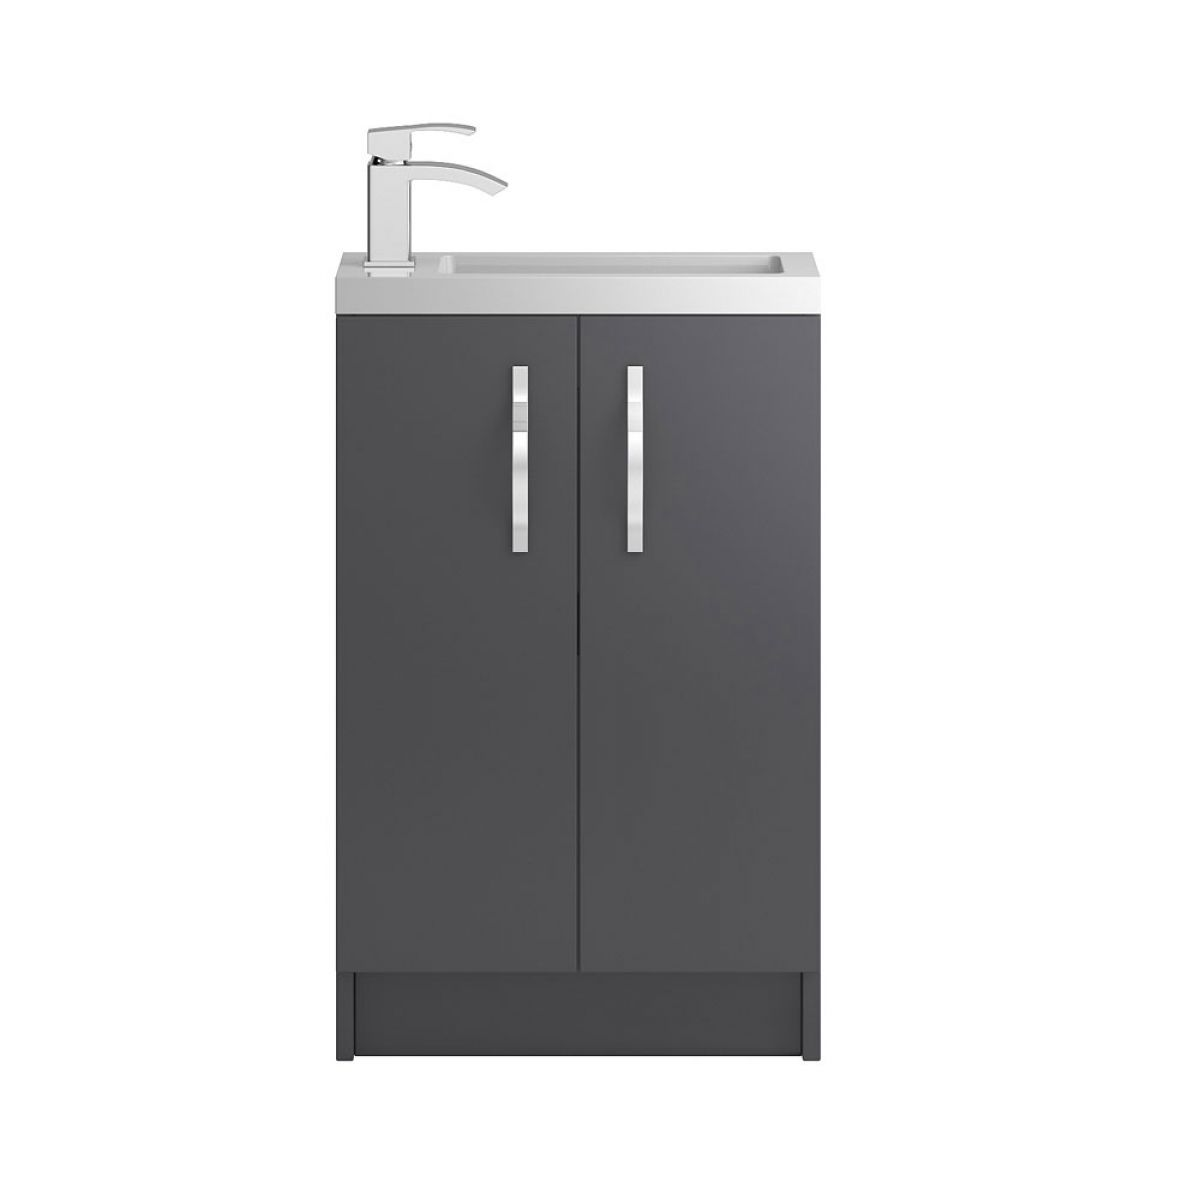 Hudson Reed Apollo Compact Gloss Grey Floor Standing Vanity Unit 500mm